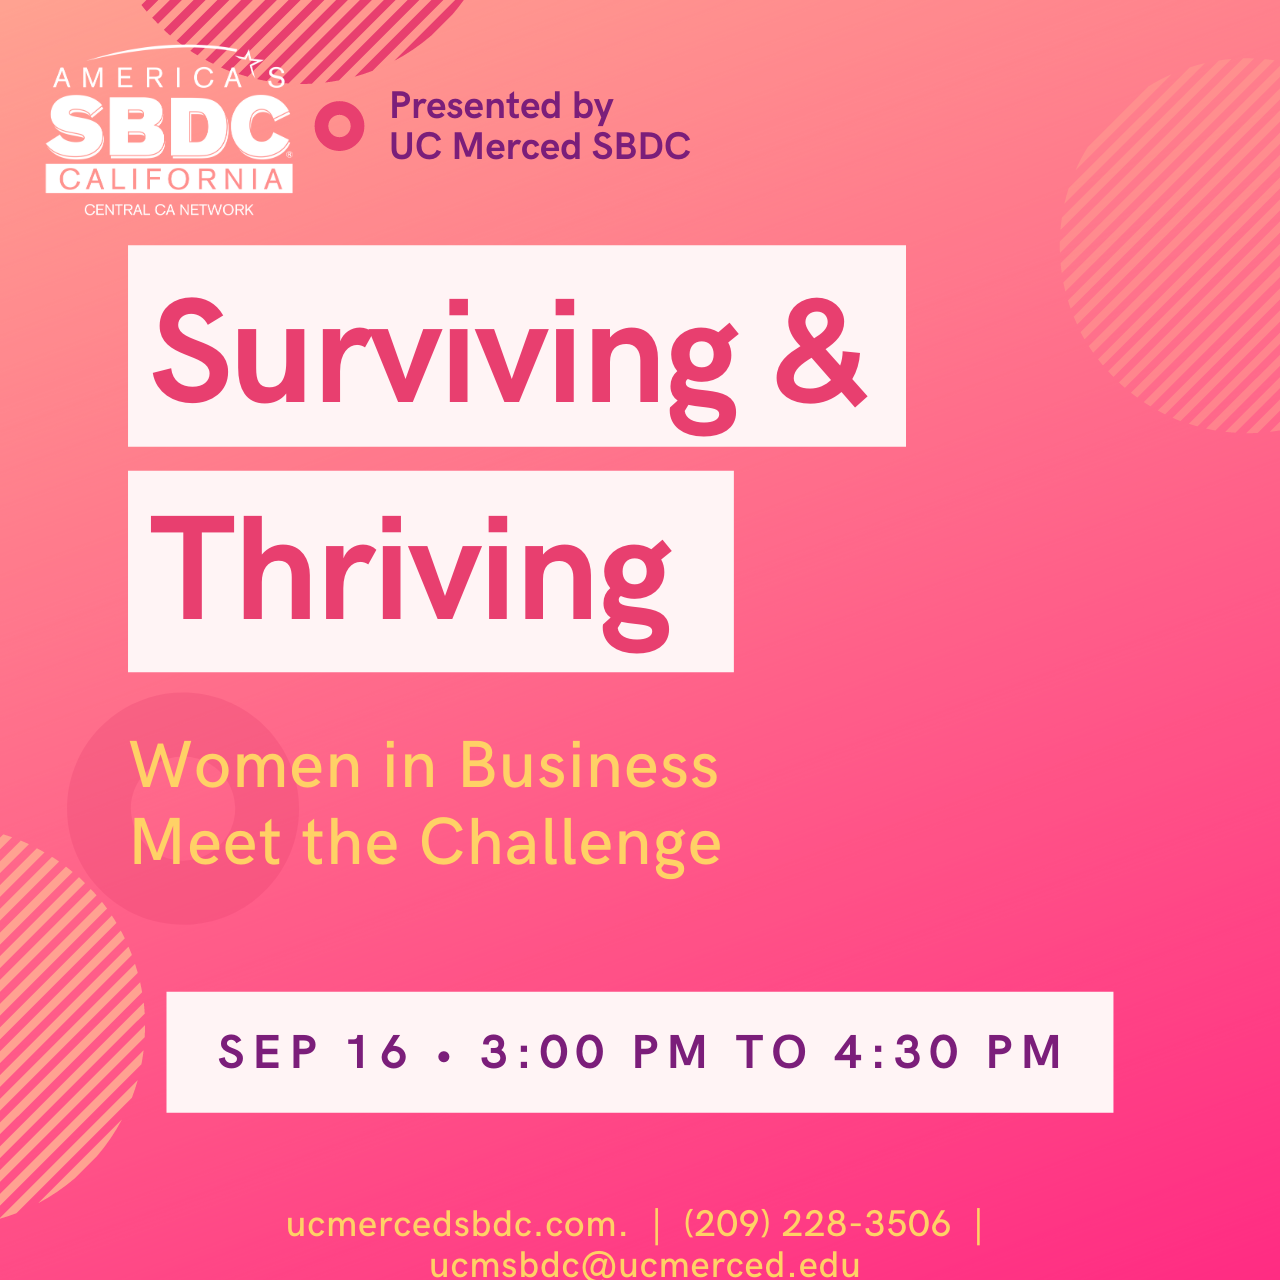 SBDC - Surviving and Thriving